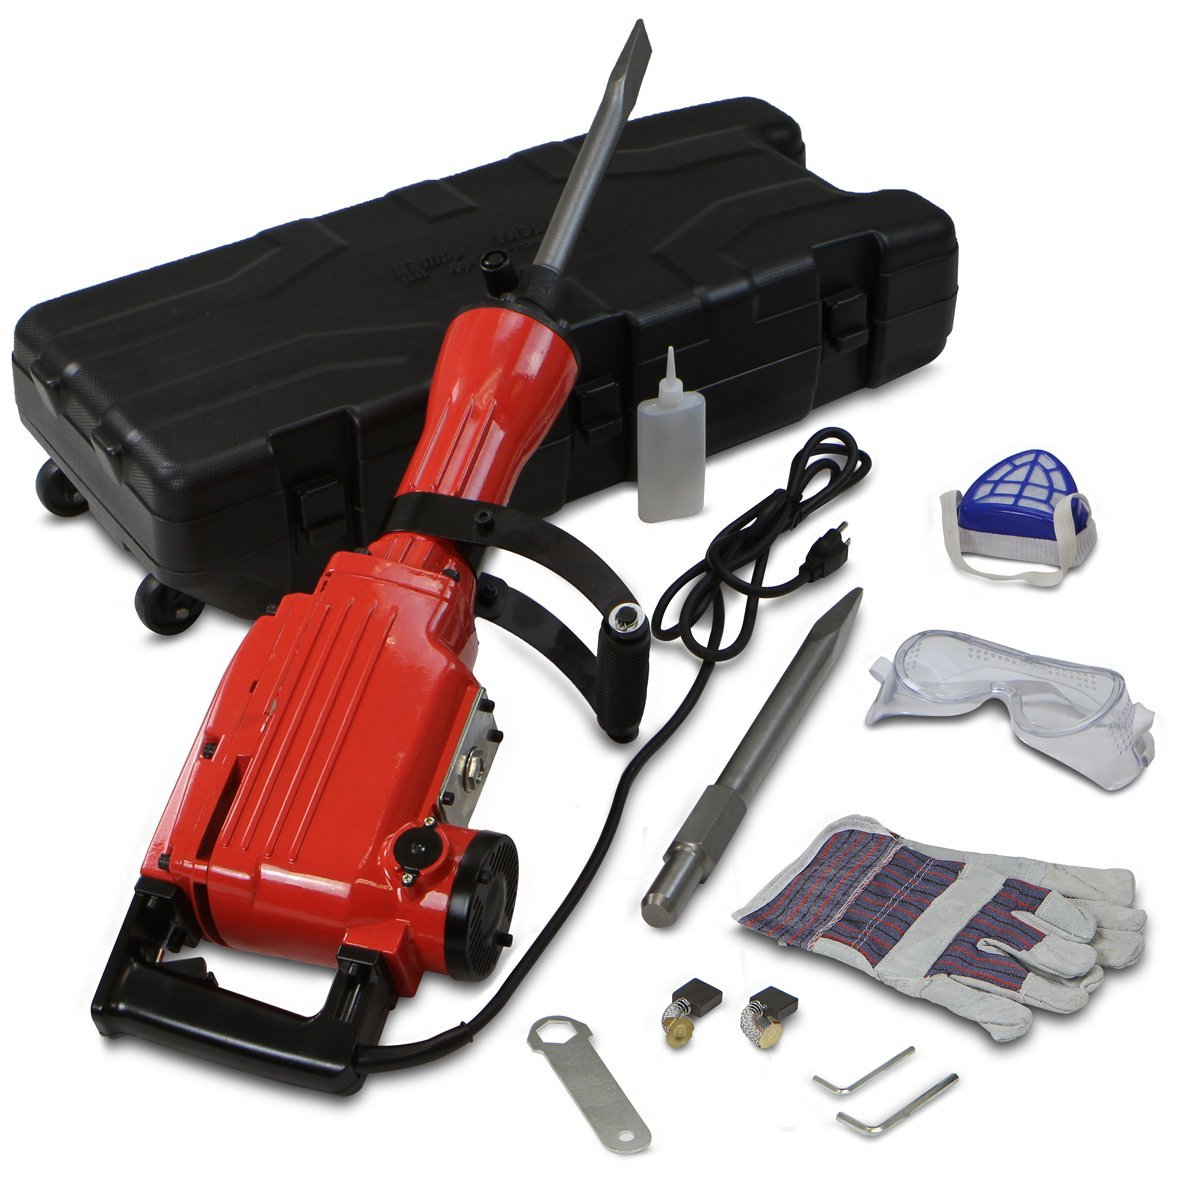 71A3HWFqlSL._SL1200_ XtremepowerUS 2200watt Demolition Jackhammer Review